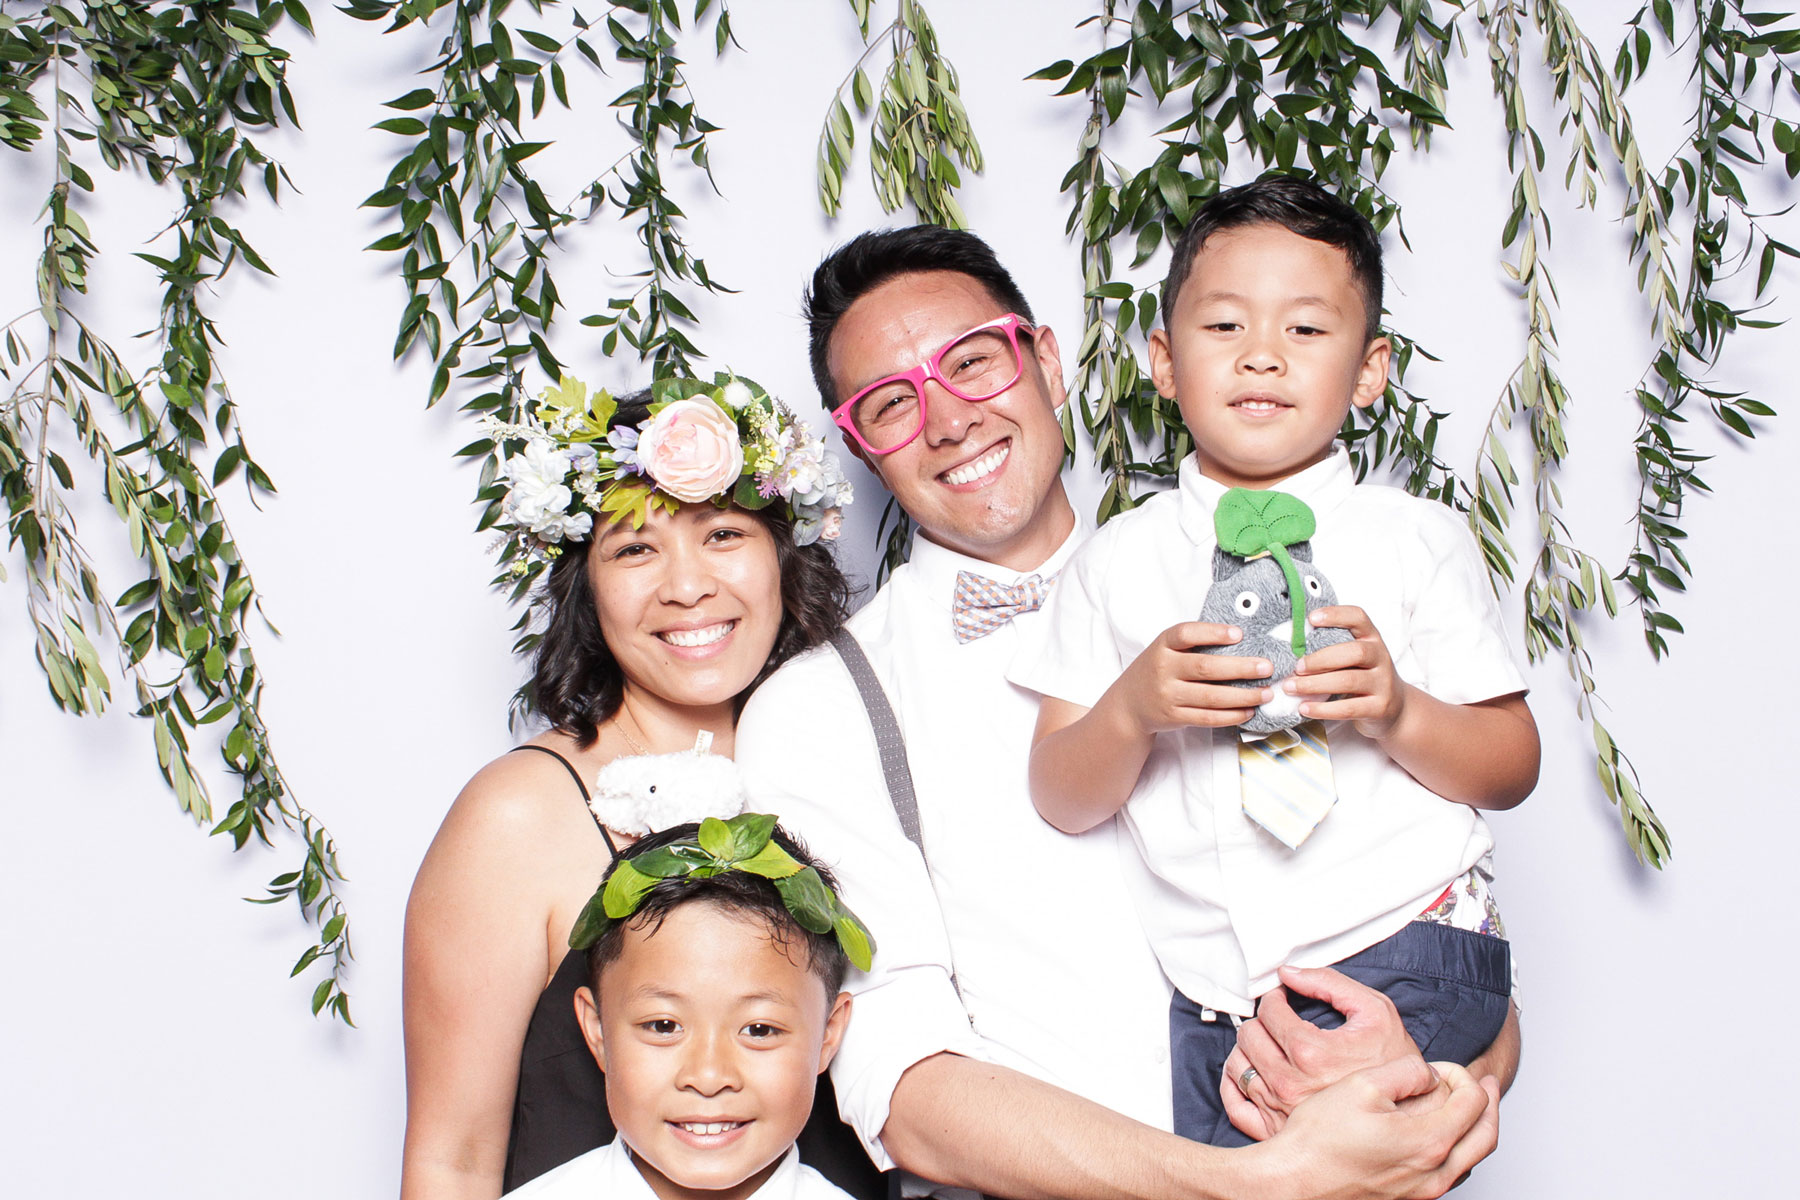 Floral wedding photo booth